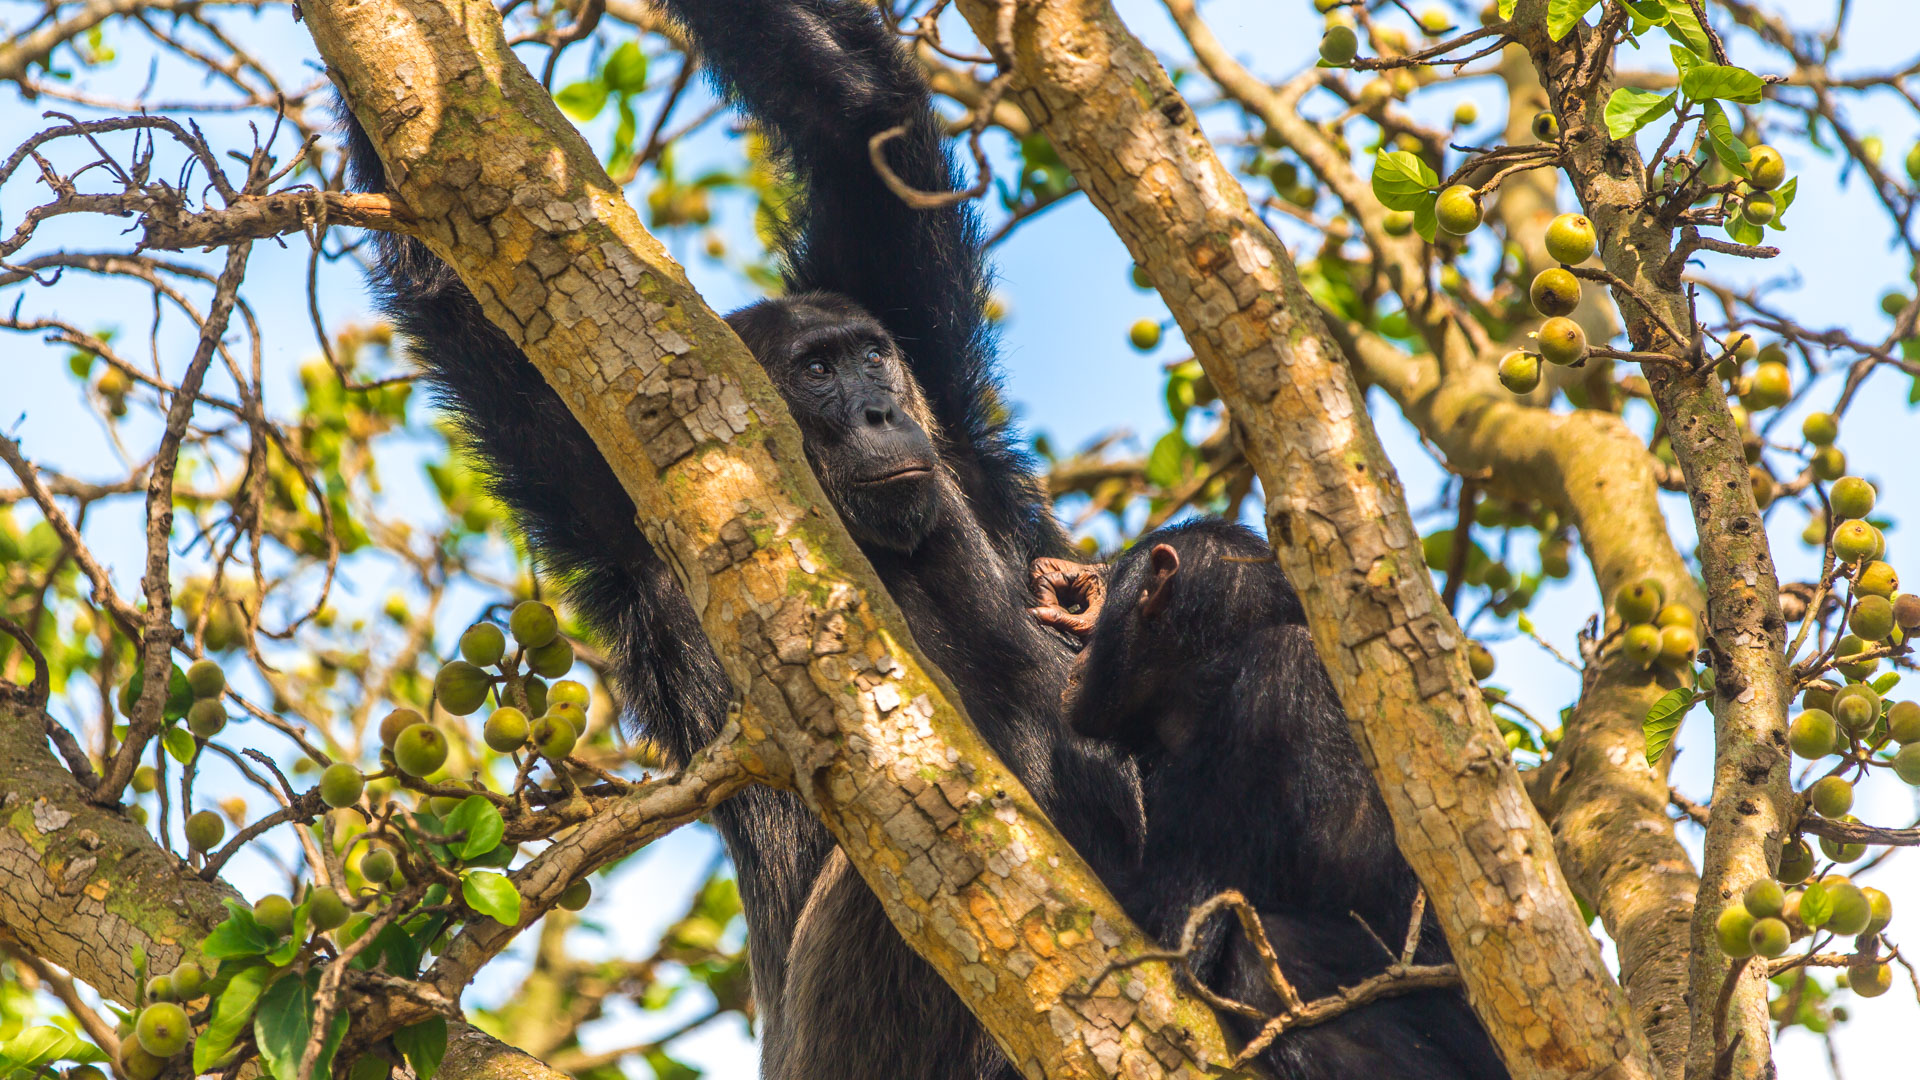 Chimpanzees in Queen Elizabeth National Park